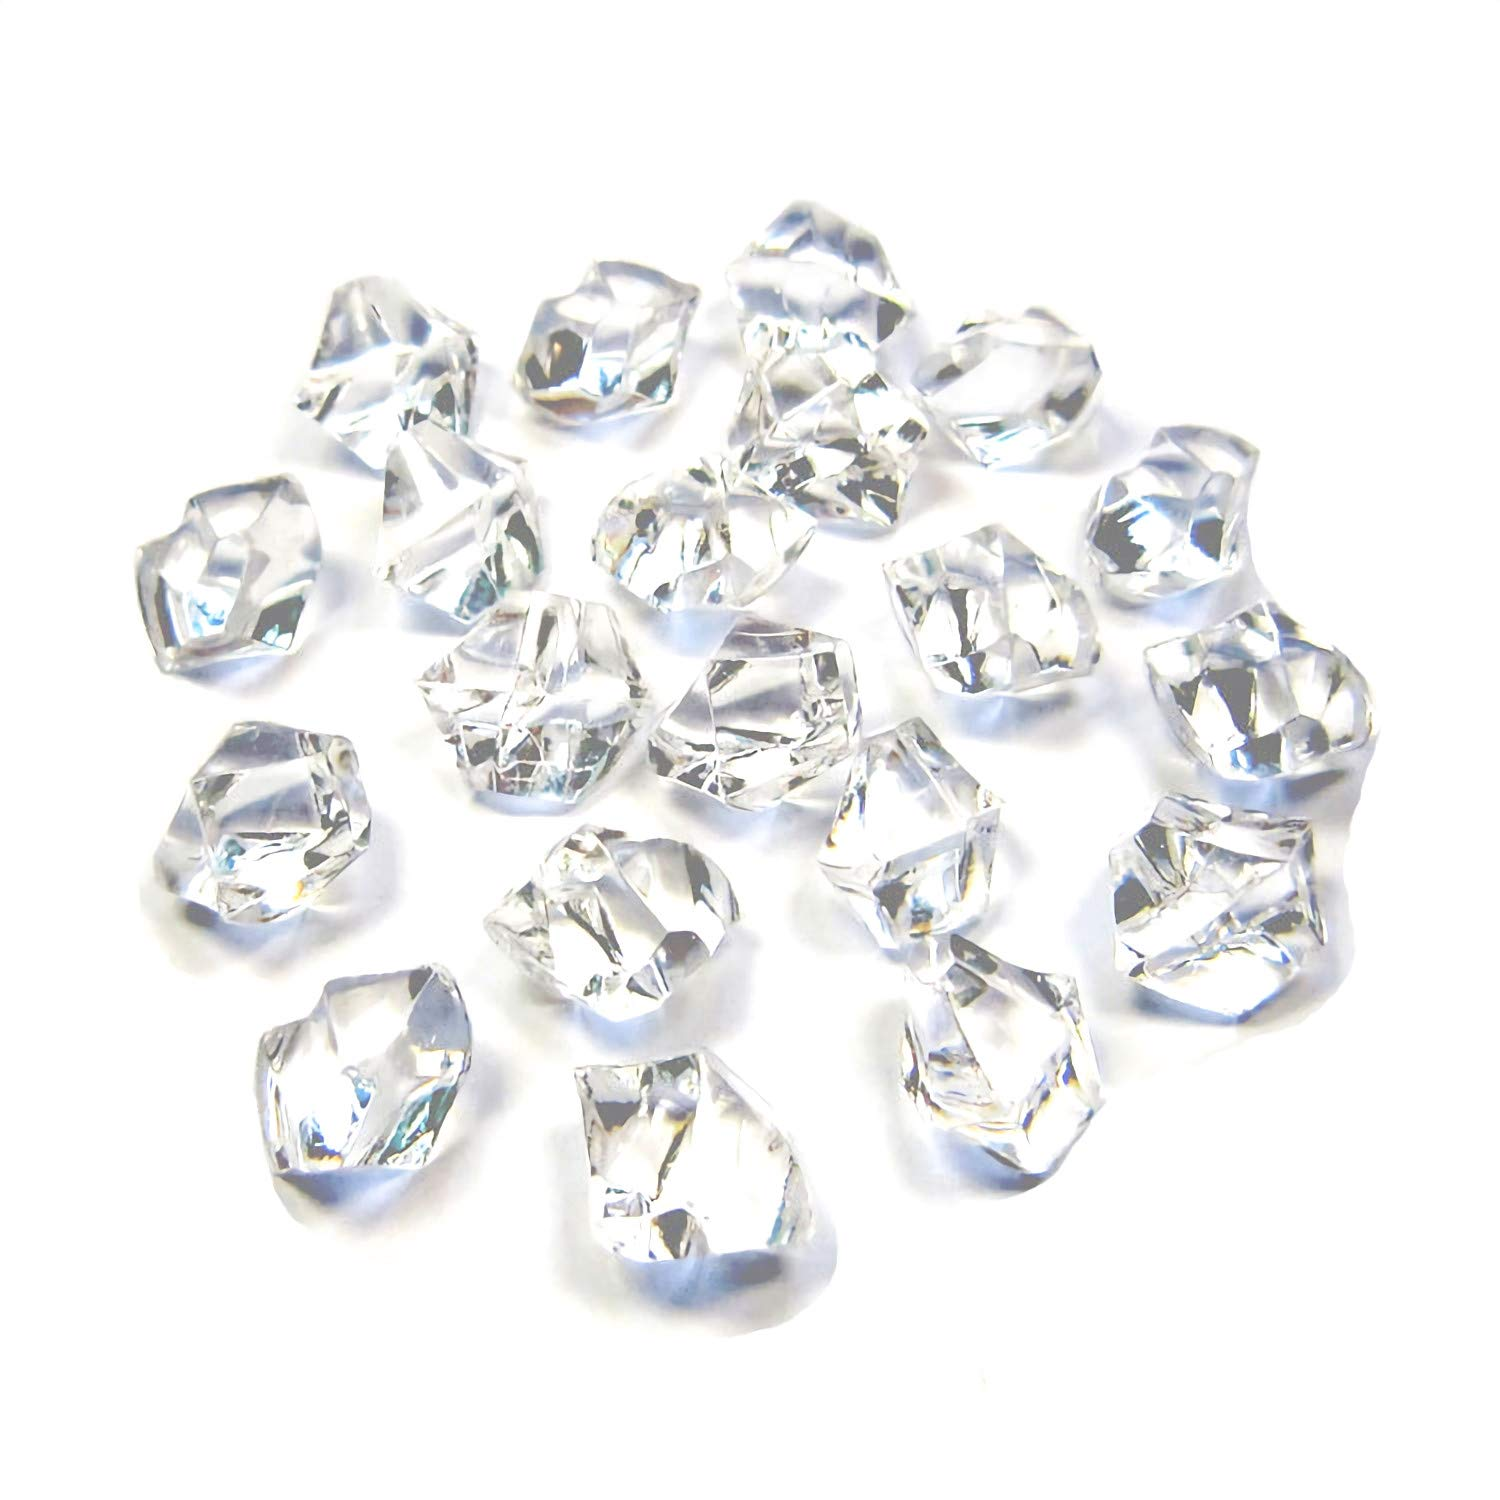 Bogo Arty Acrylic Crystals Ice Rocks Clear Gem Stones for Vase Fillers, Table Scatter, Party Favor, Wedding Decoration, Arts Crafts (Approx 1000 Pieces, 2/4 inch)